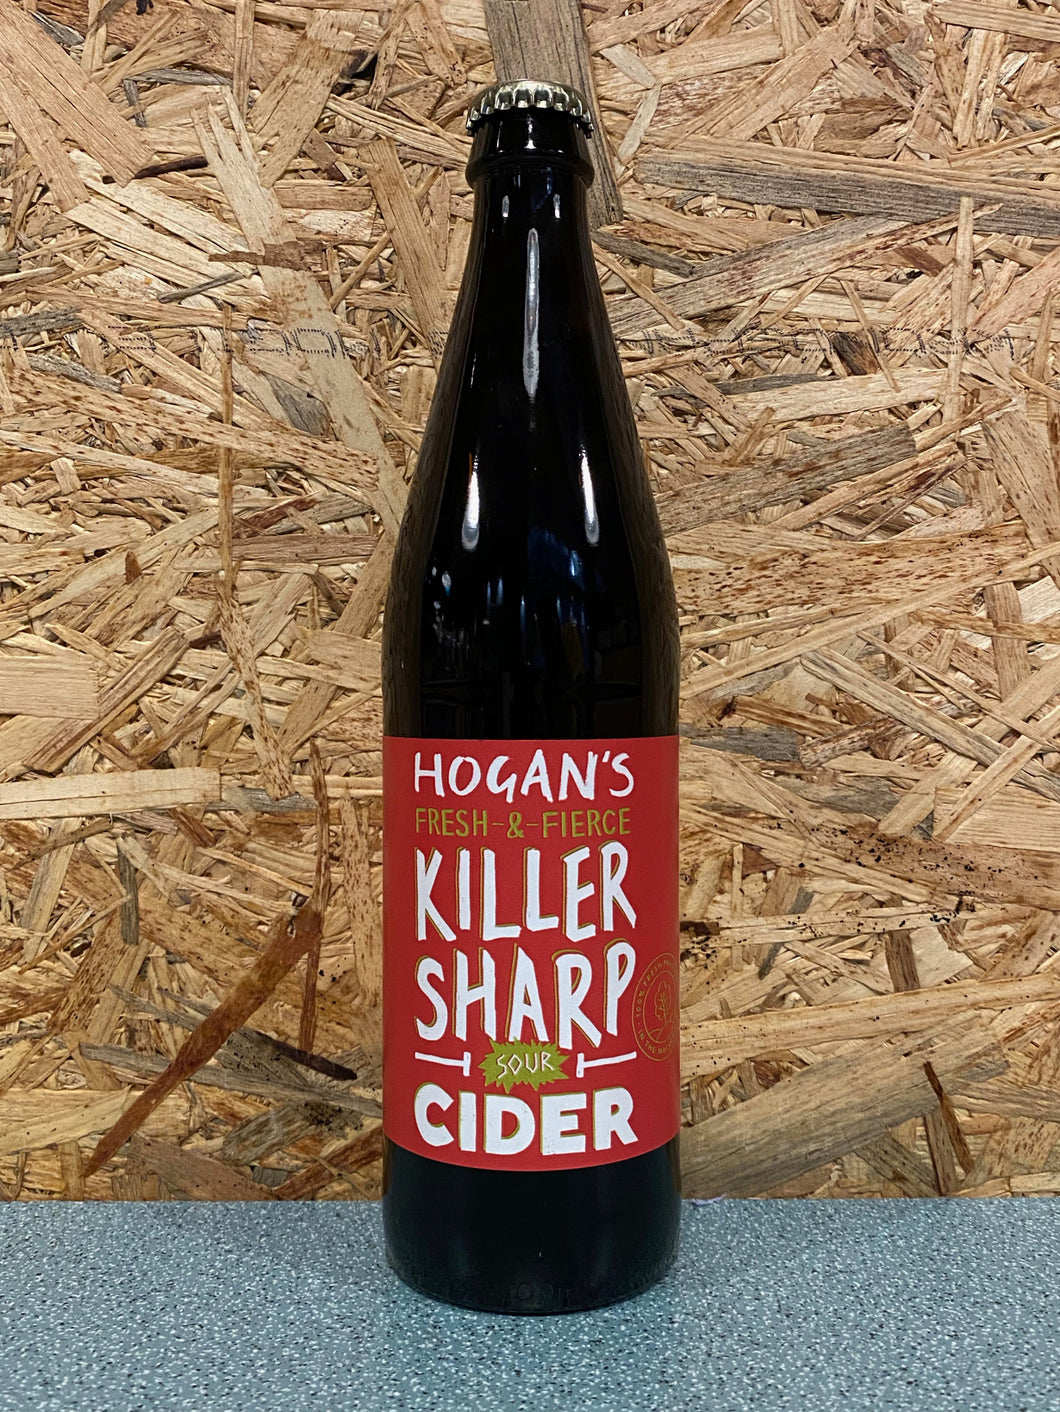 HOGANS Killer Sharp